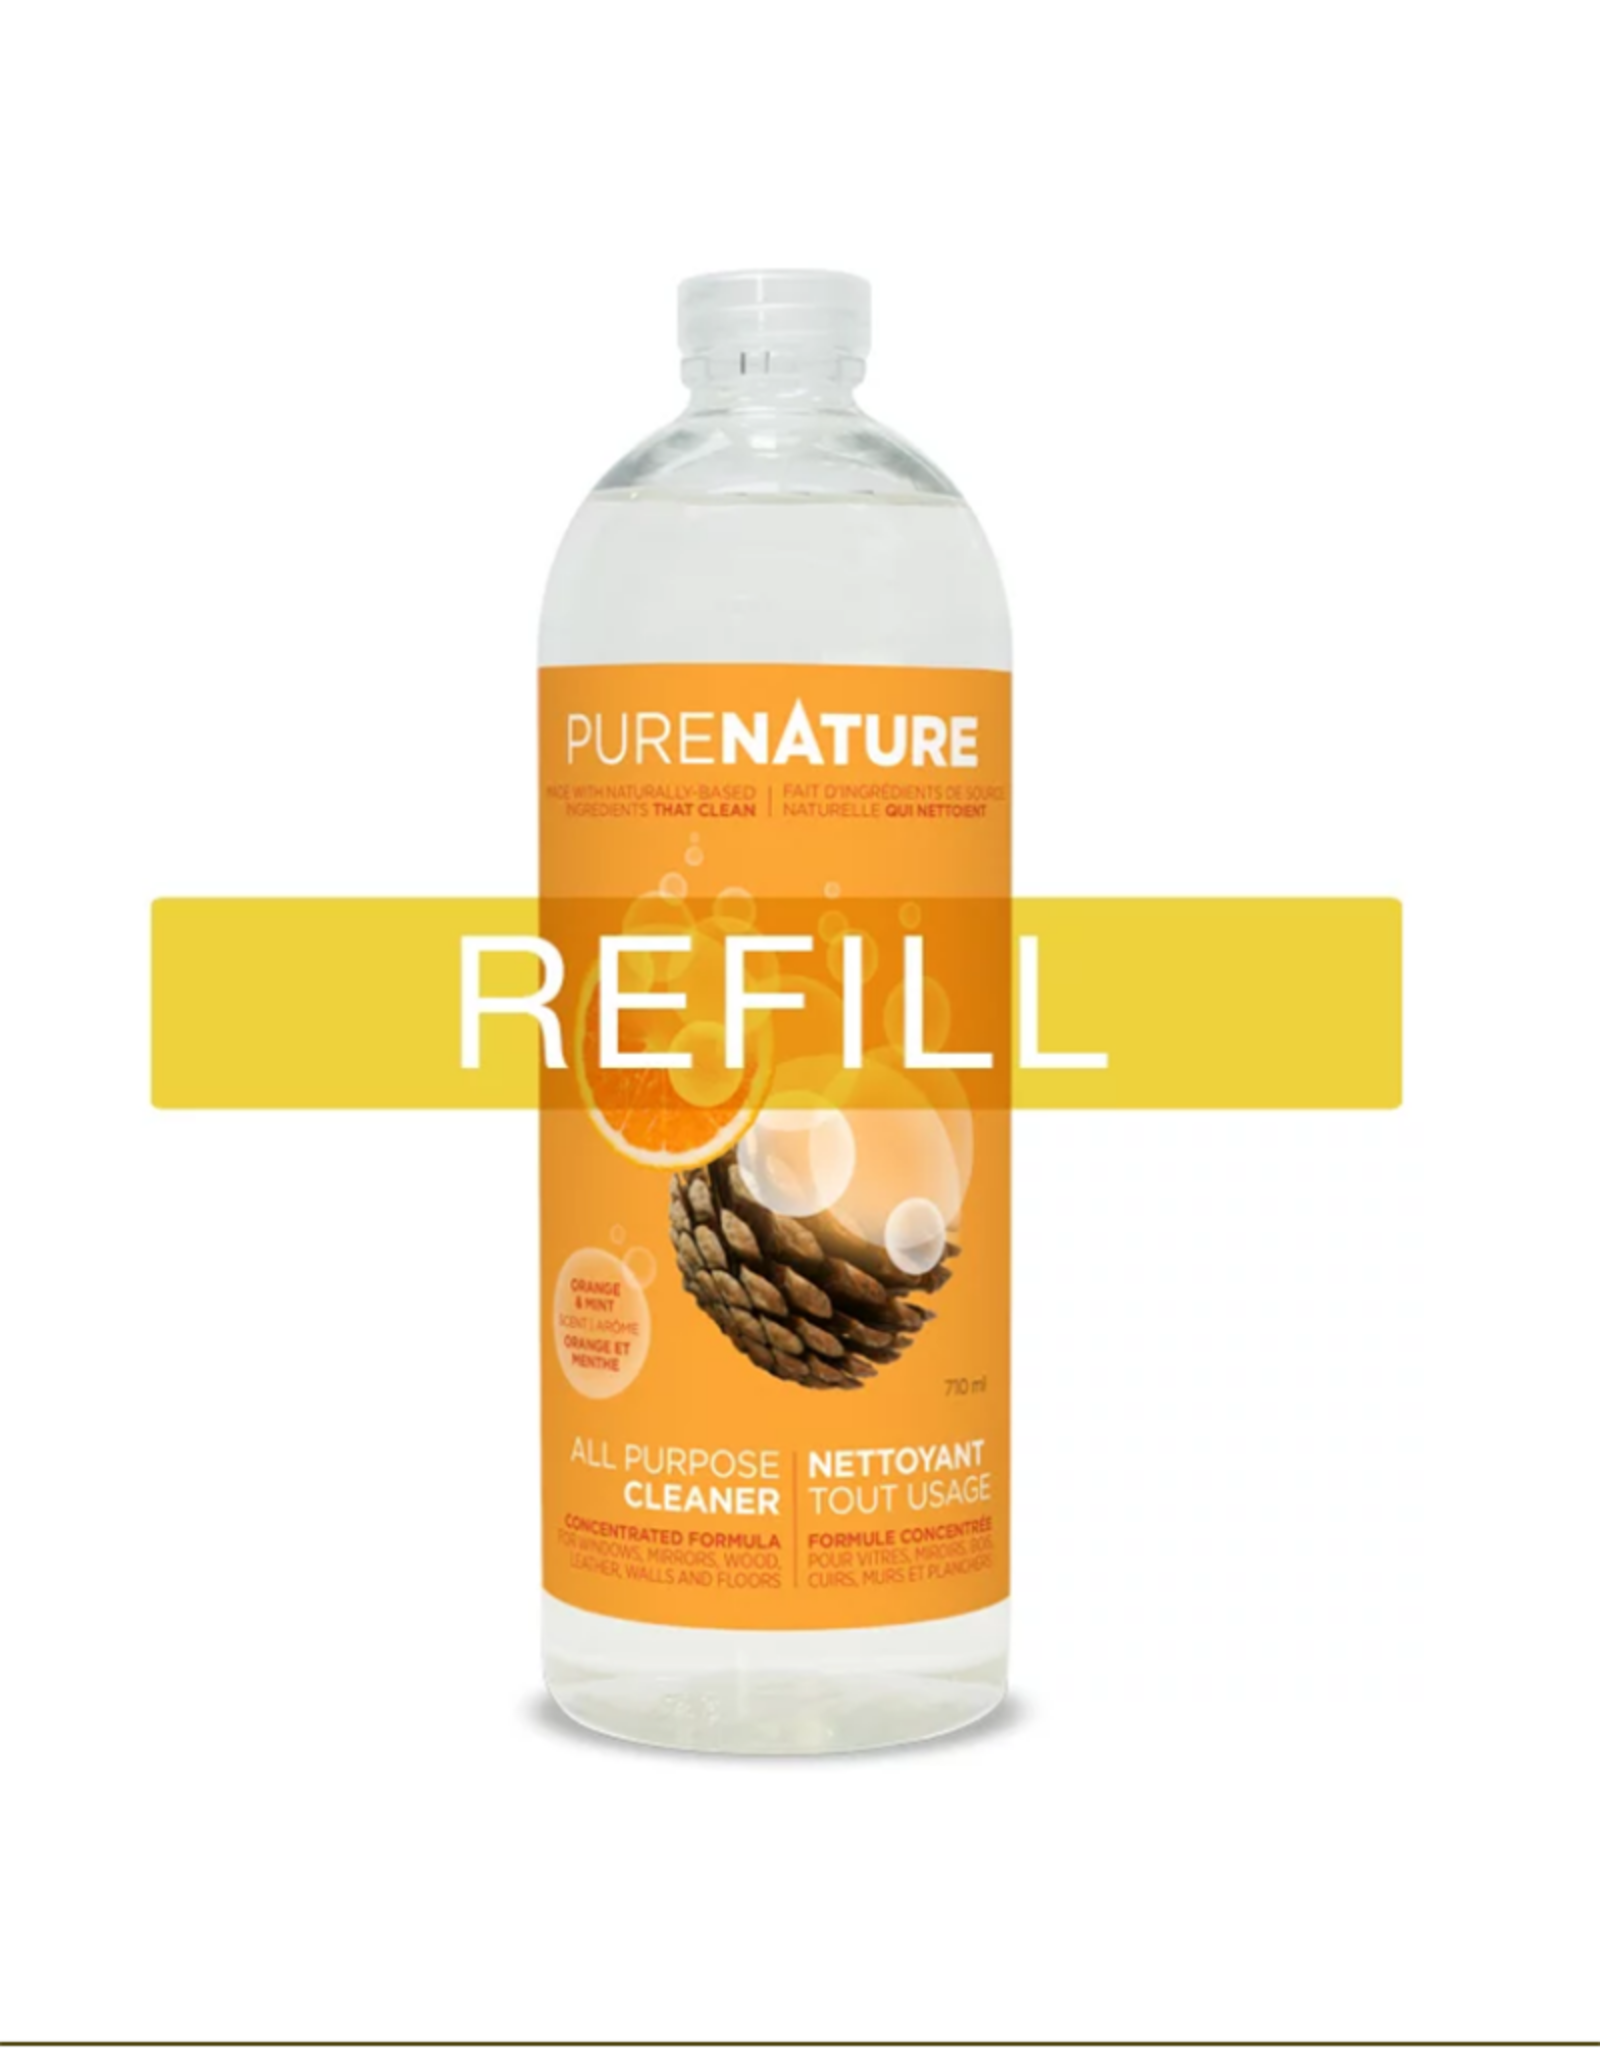 Purenature Purenature - Cleaners, Ultraconcentrated All-Purpose Cleaner - REFILL